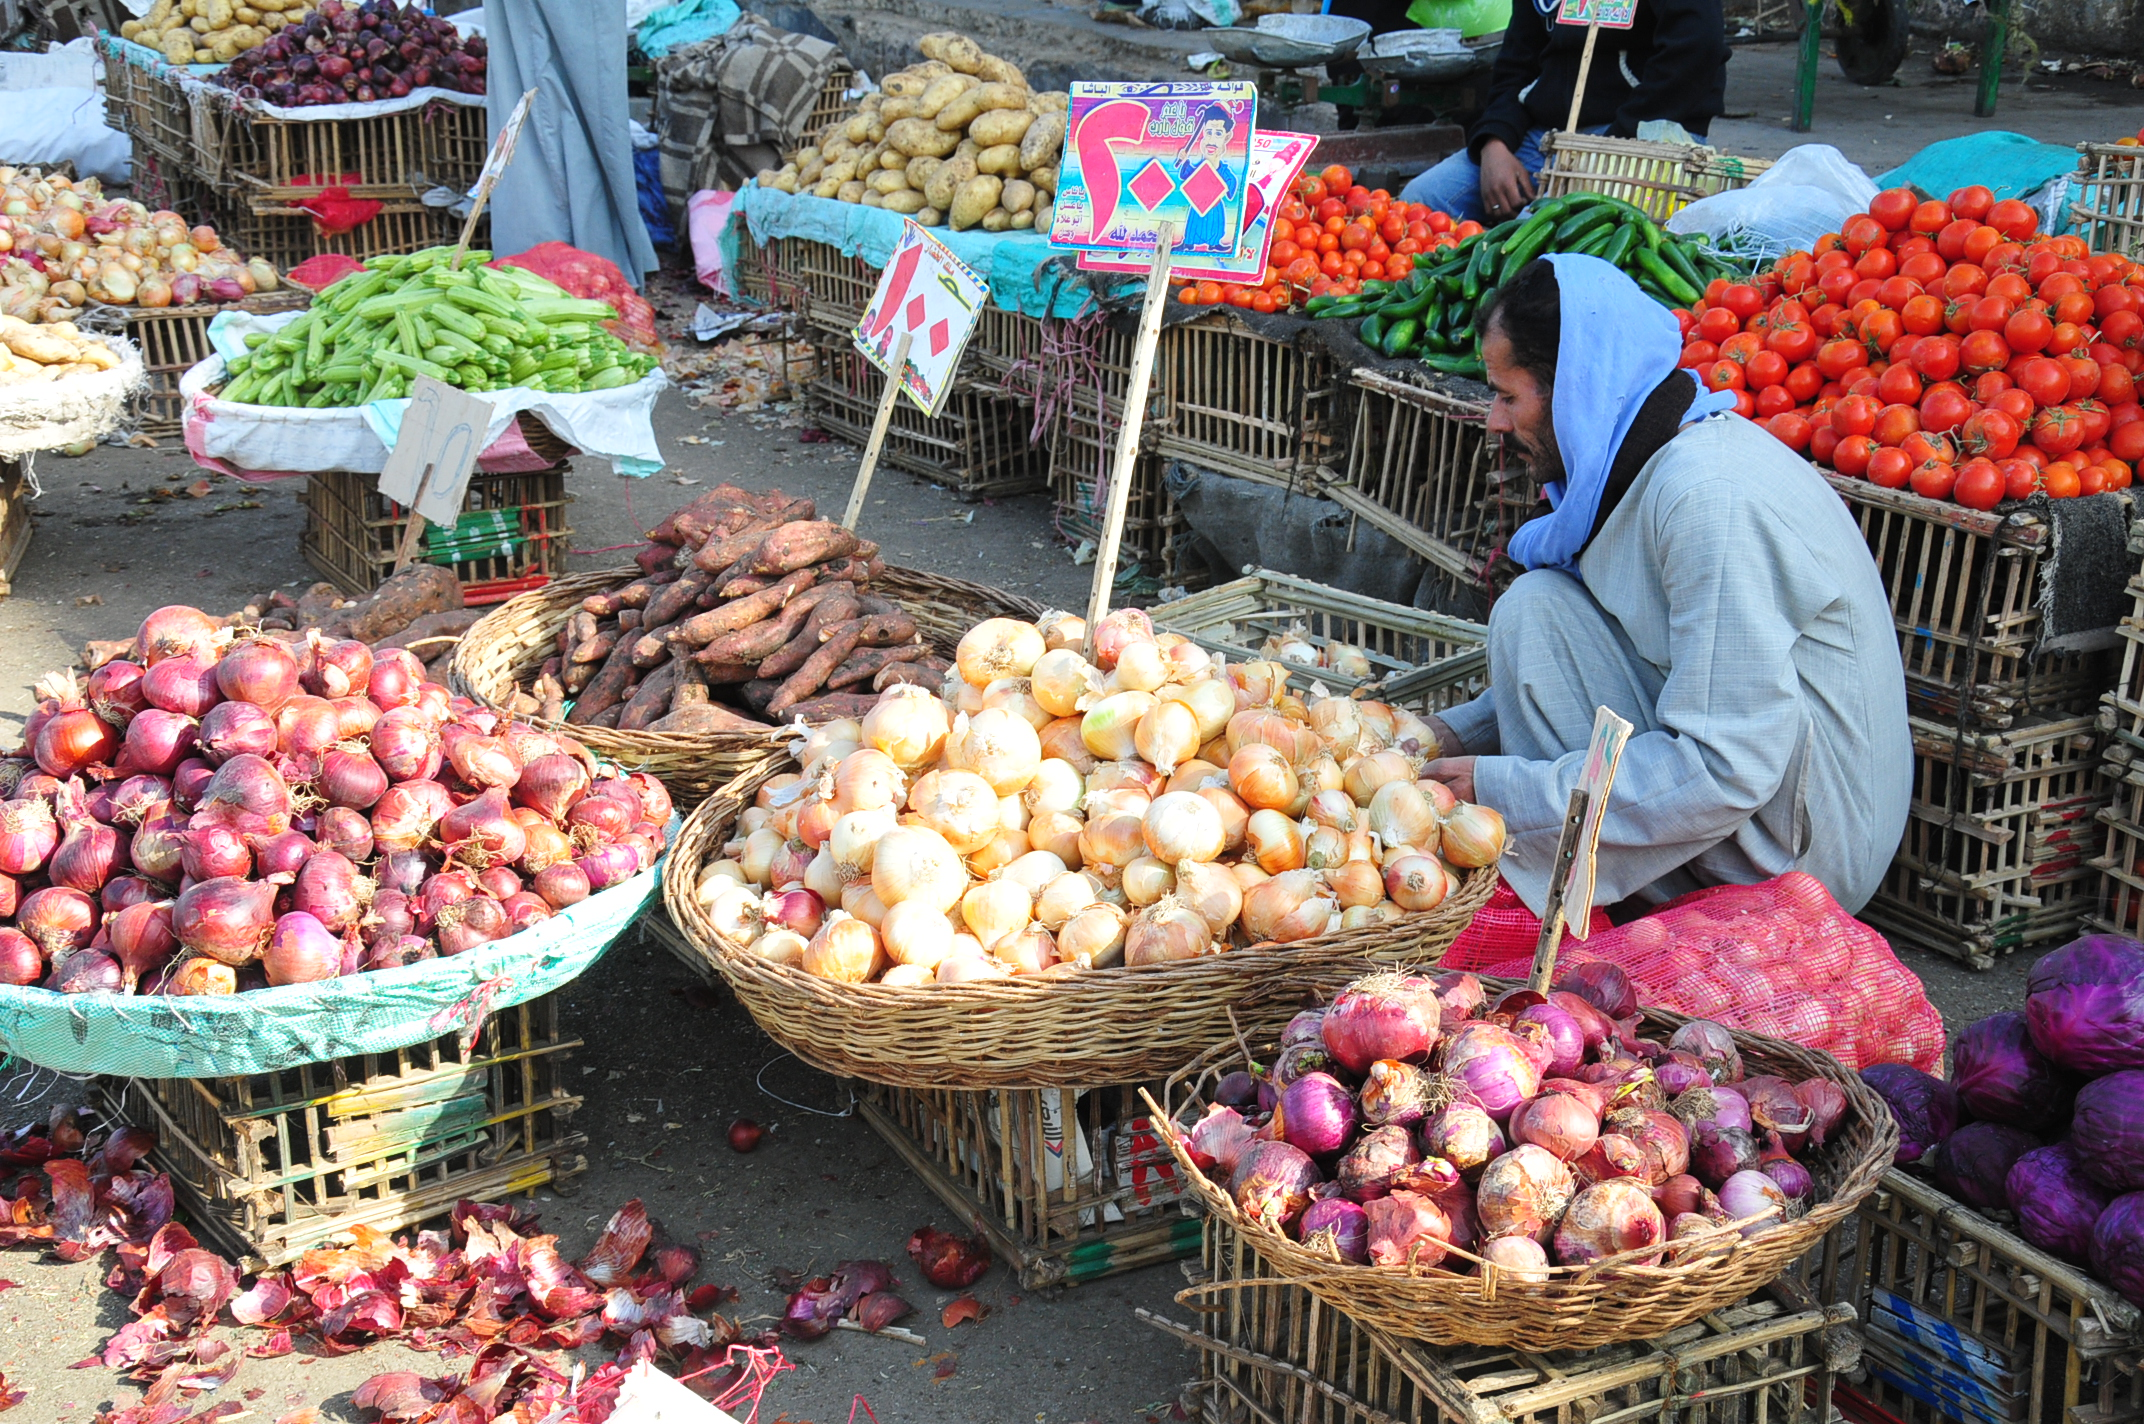 Price caps may be placed on fruits and vegetables as a means for the government to control the market and protect low income consumers (Photo by Hassan Ibrahim\DNE)